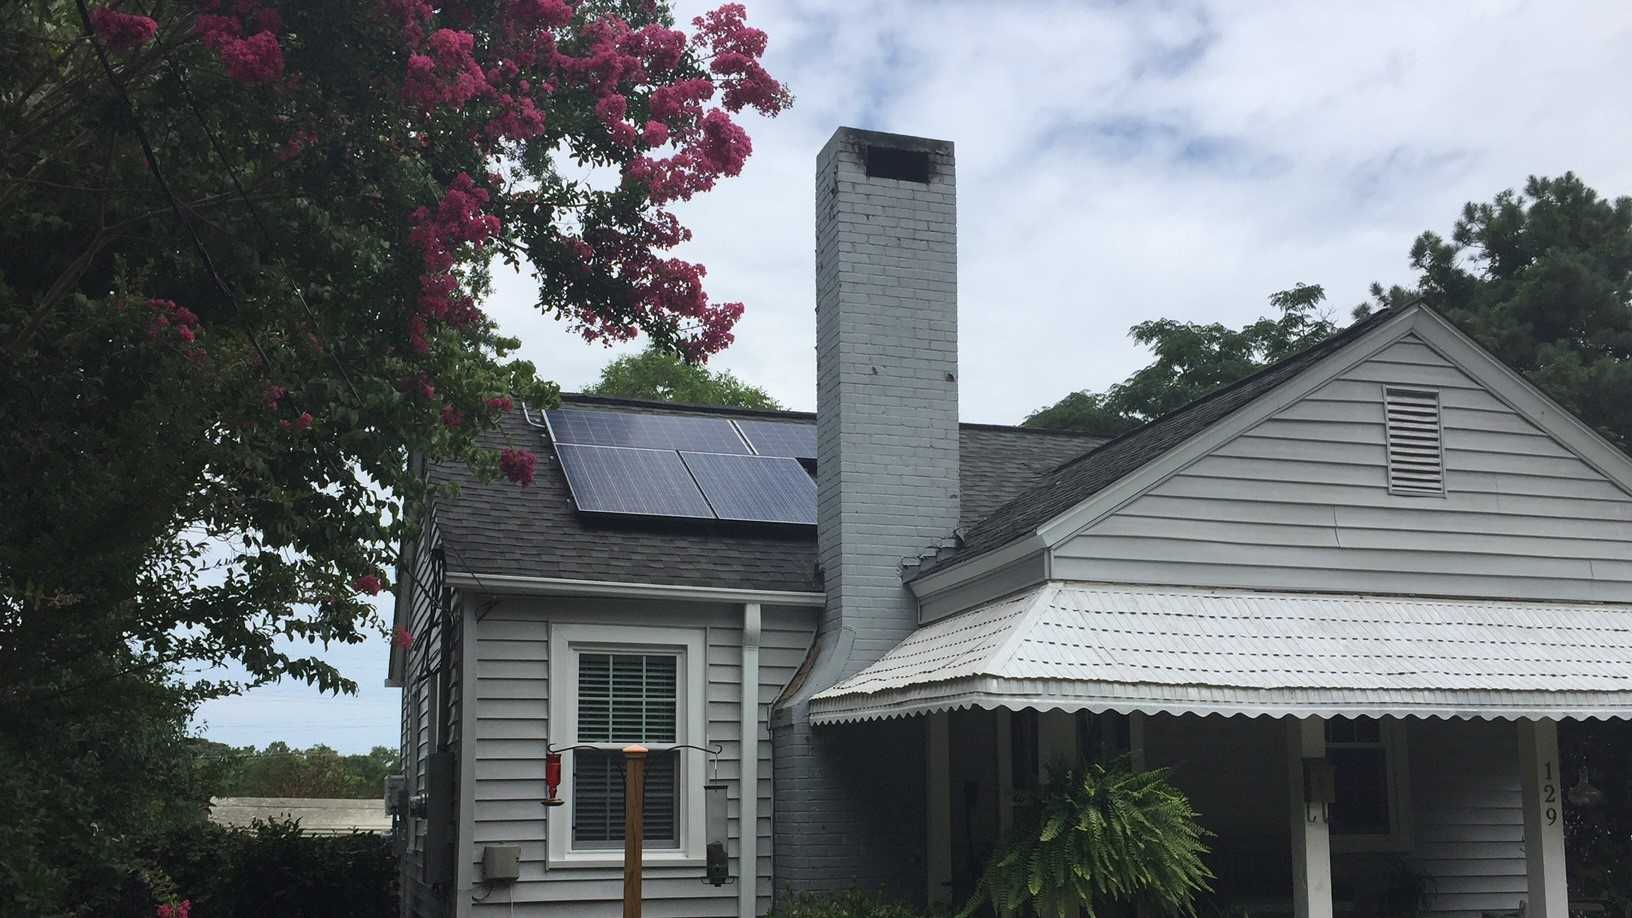 A Spartanburg man said a mistake made by city officials is keeping him using the solar panels on his home.